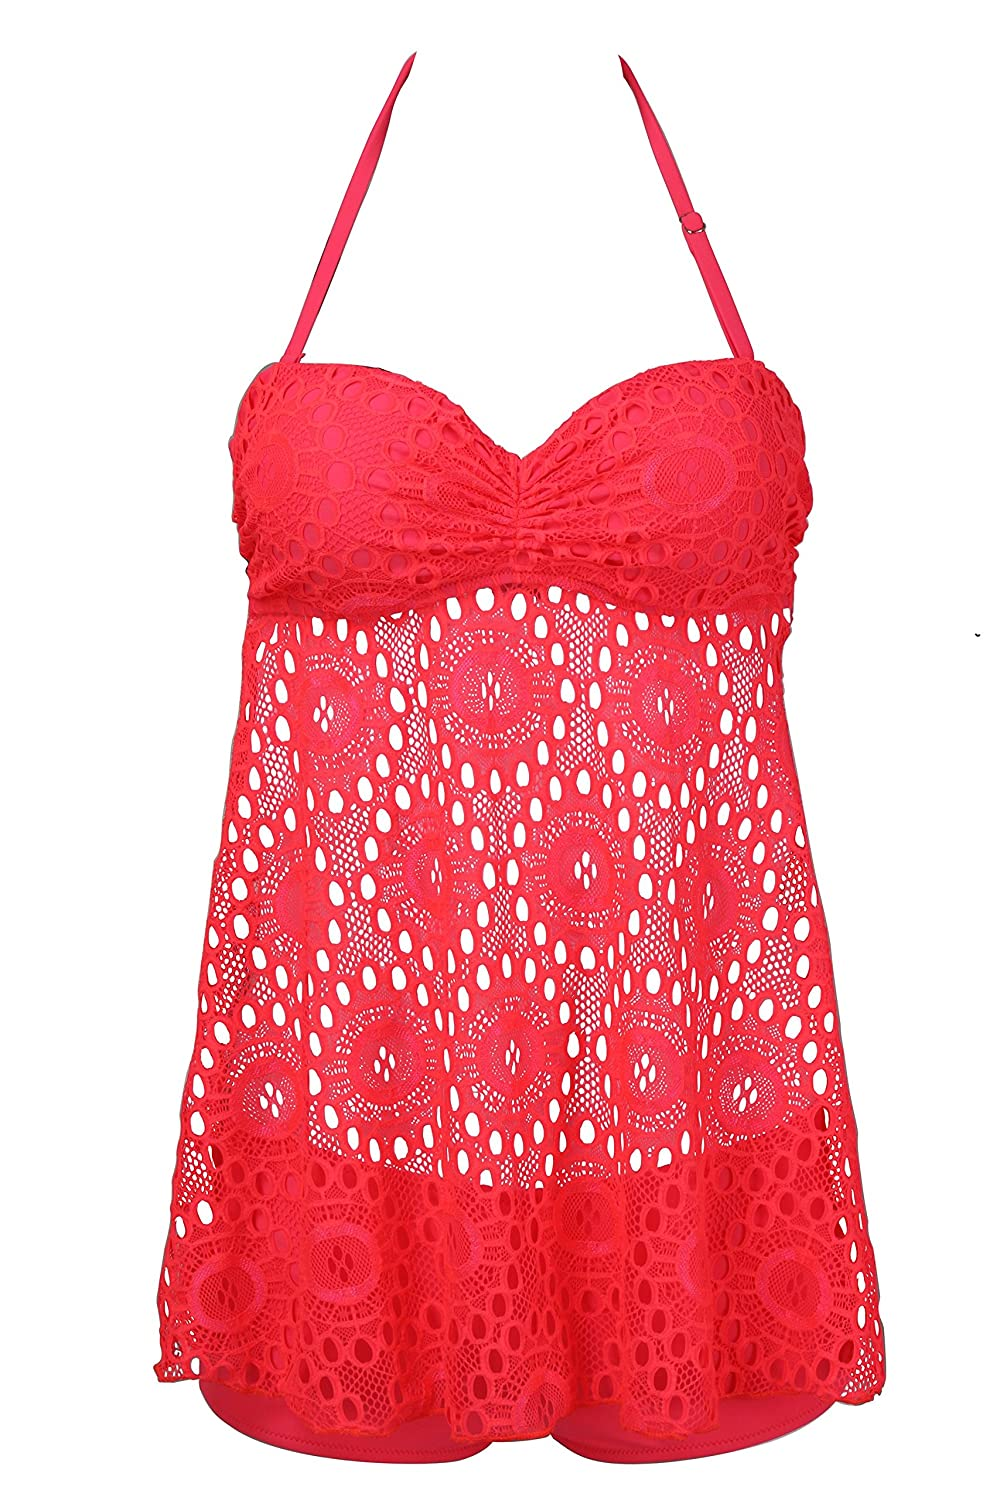 a7d897550f EBMORE® Womens Lace Tankini Crochet Mesh Cover Swimsuit Bathing Suit  Swimwear at Amazon Women s Clothing store